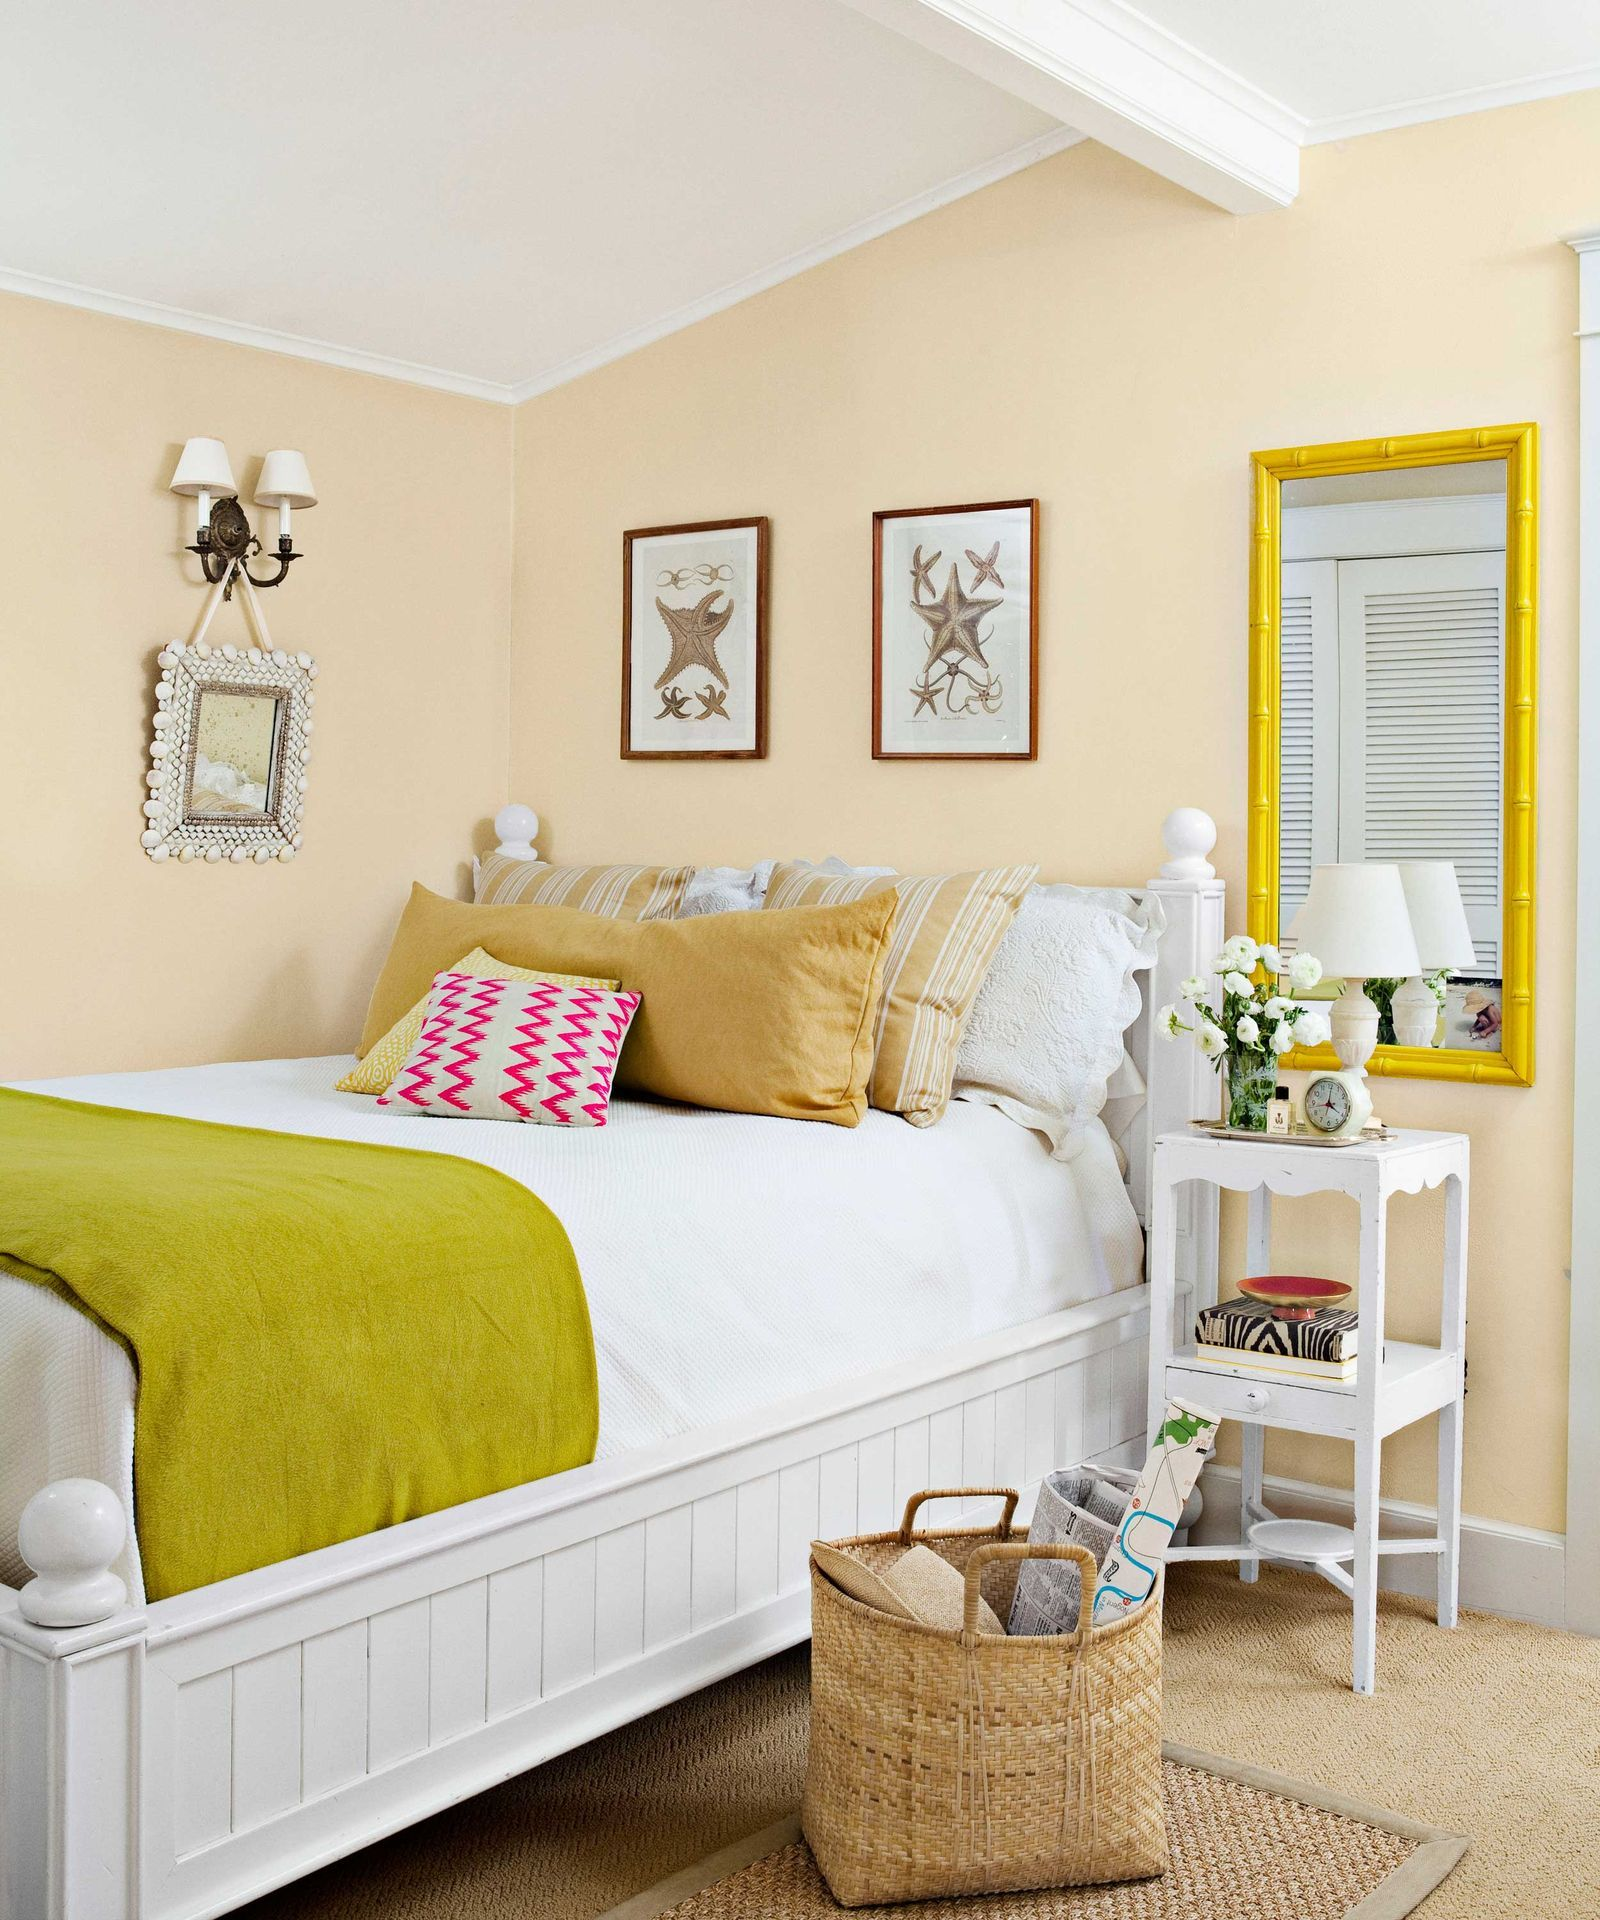 22 Of The Best Paint Colors For Small Spaces Cozy Small Bedrooms